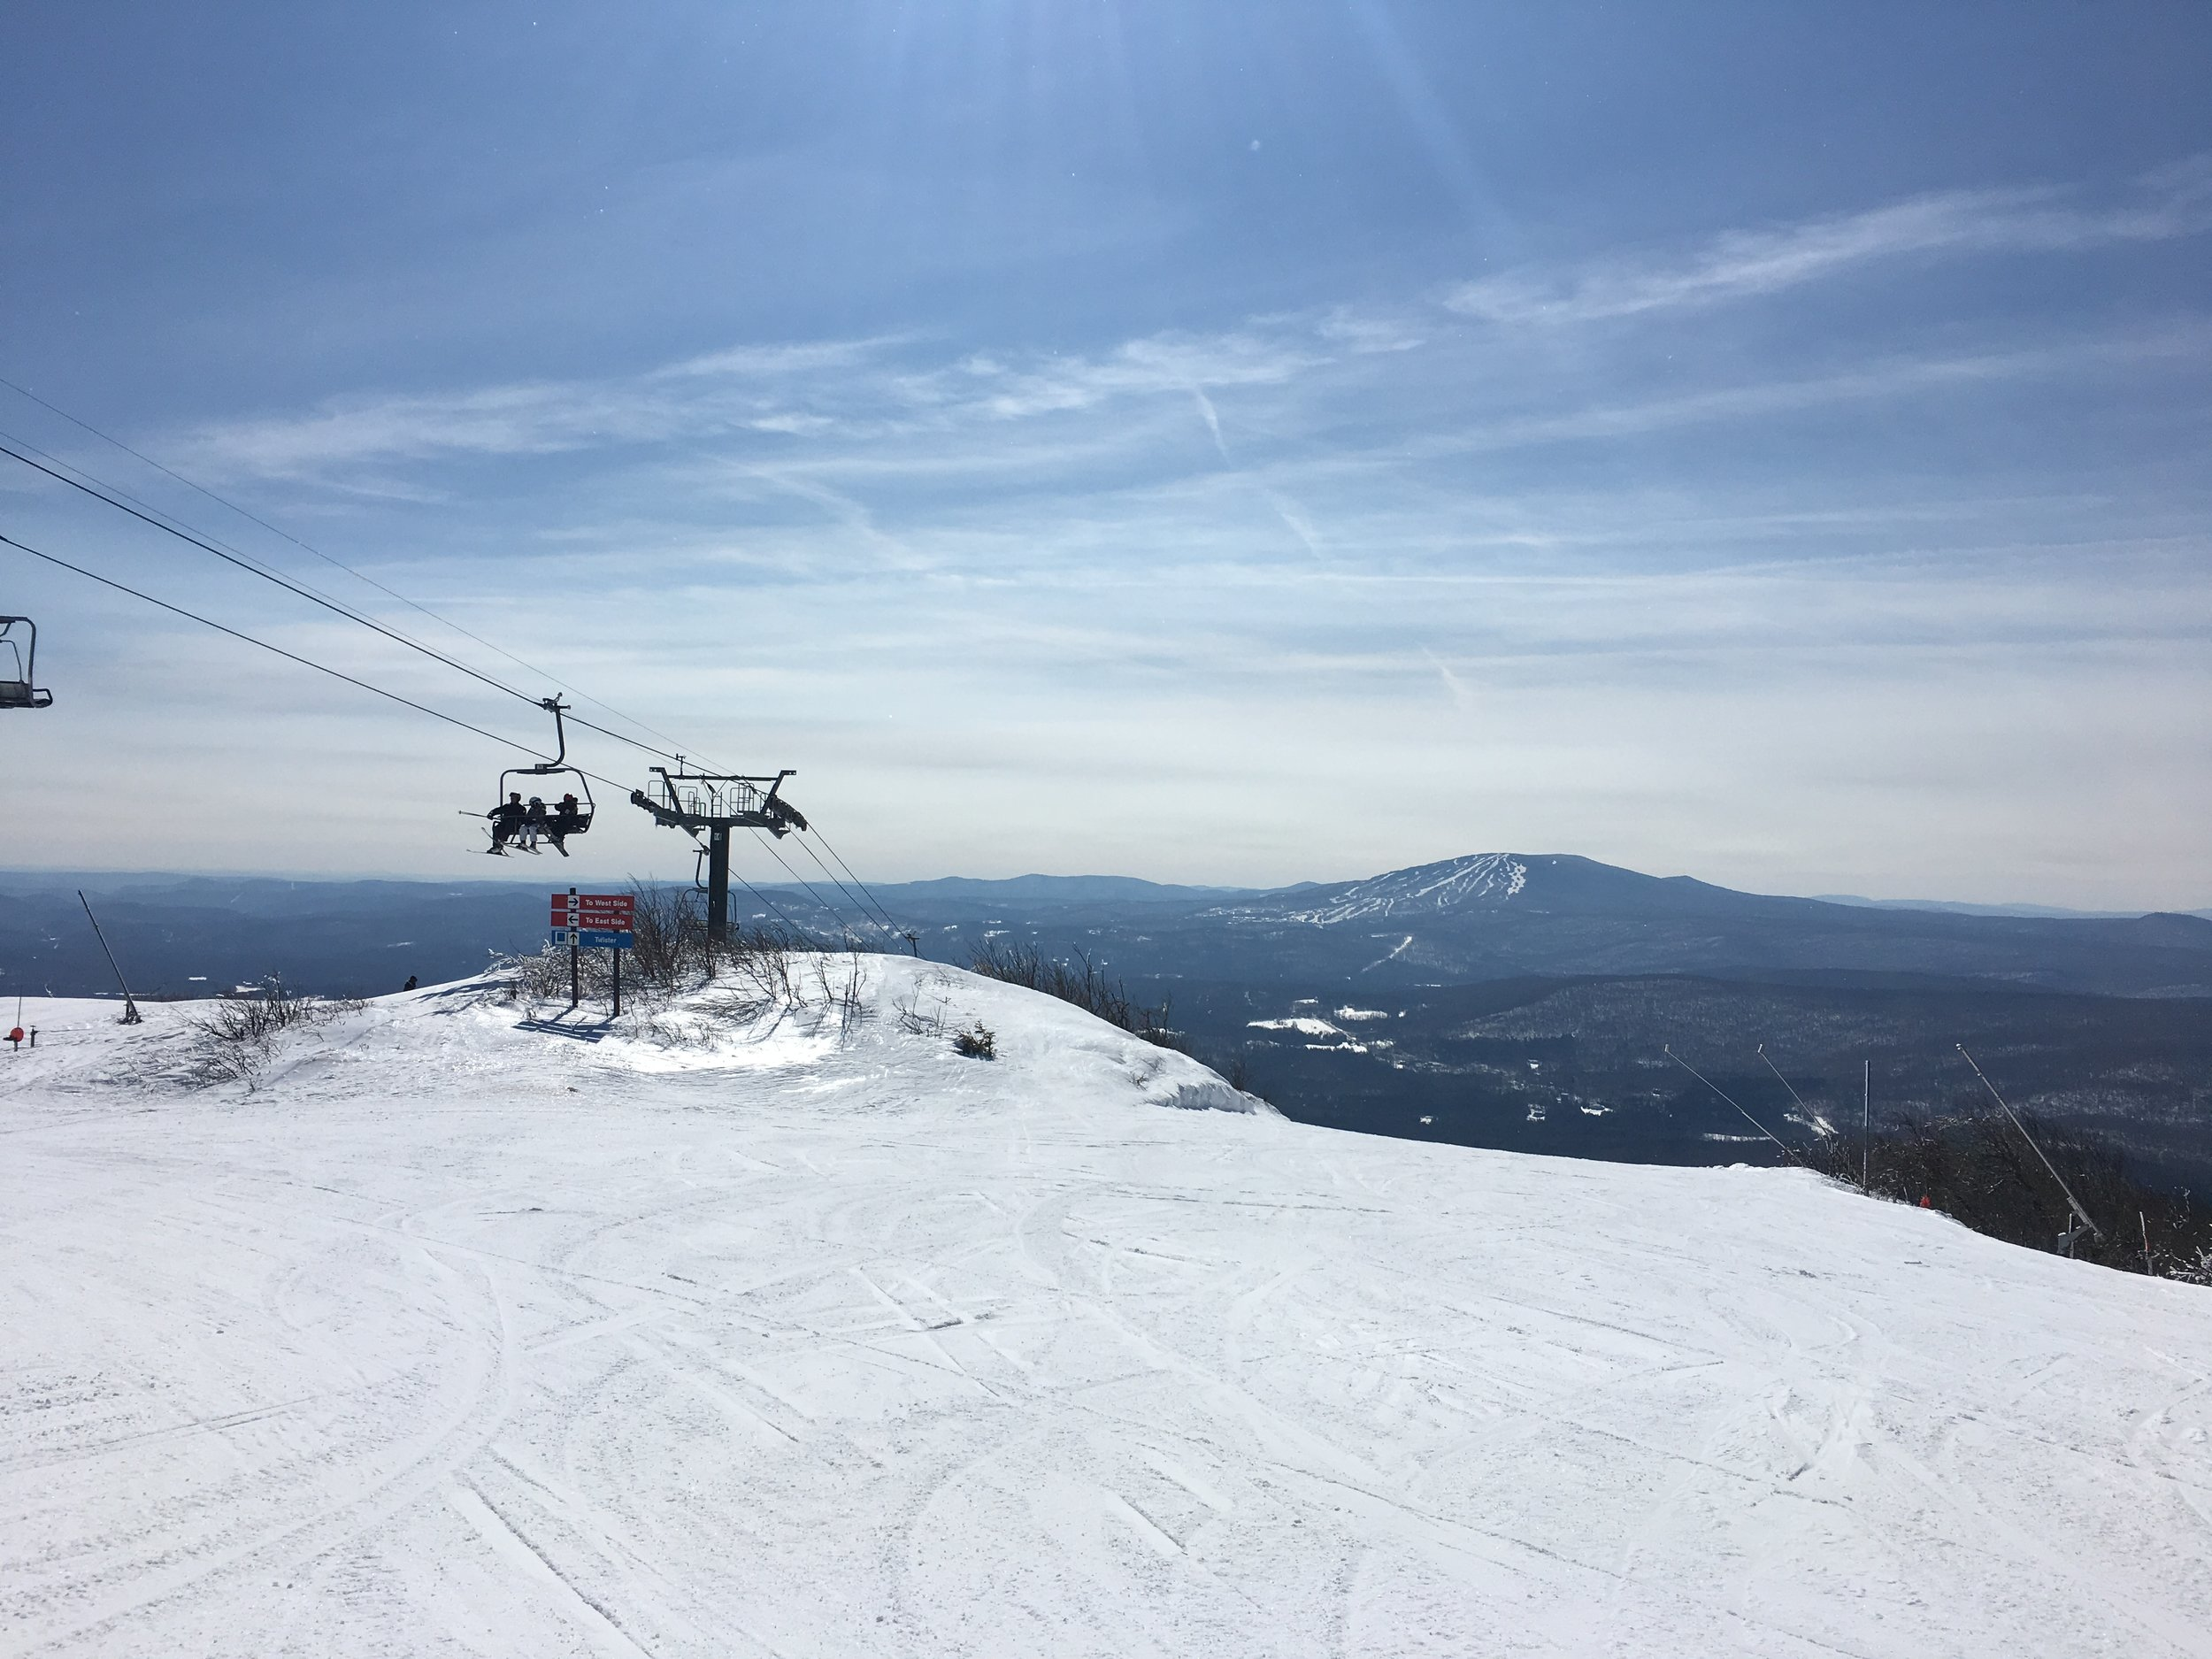 Top of Bromley Ski Resort in March